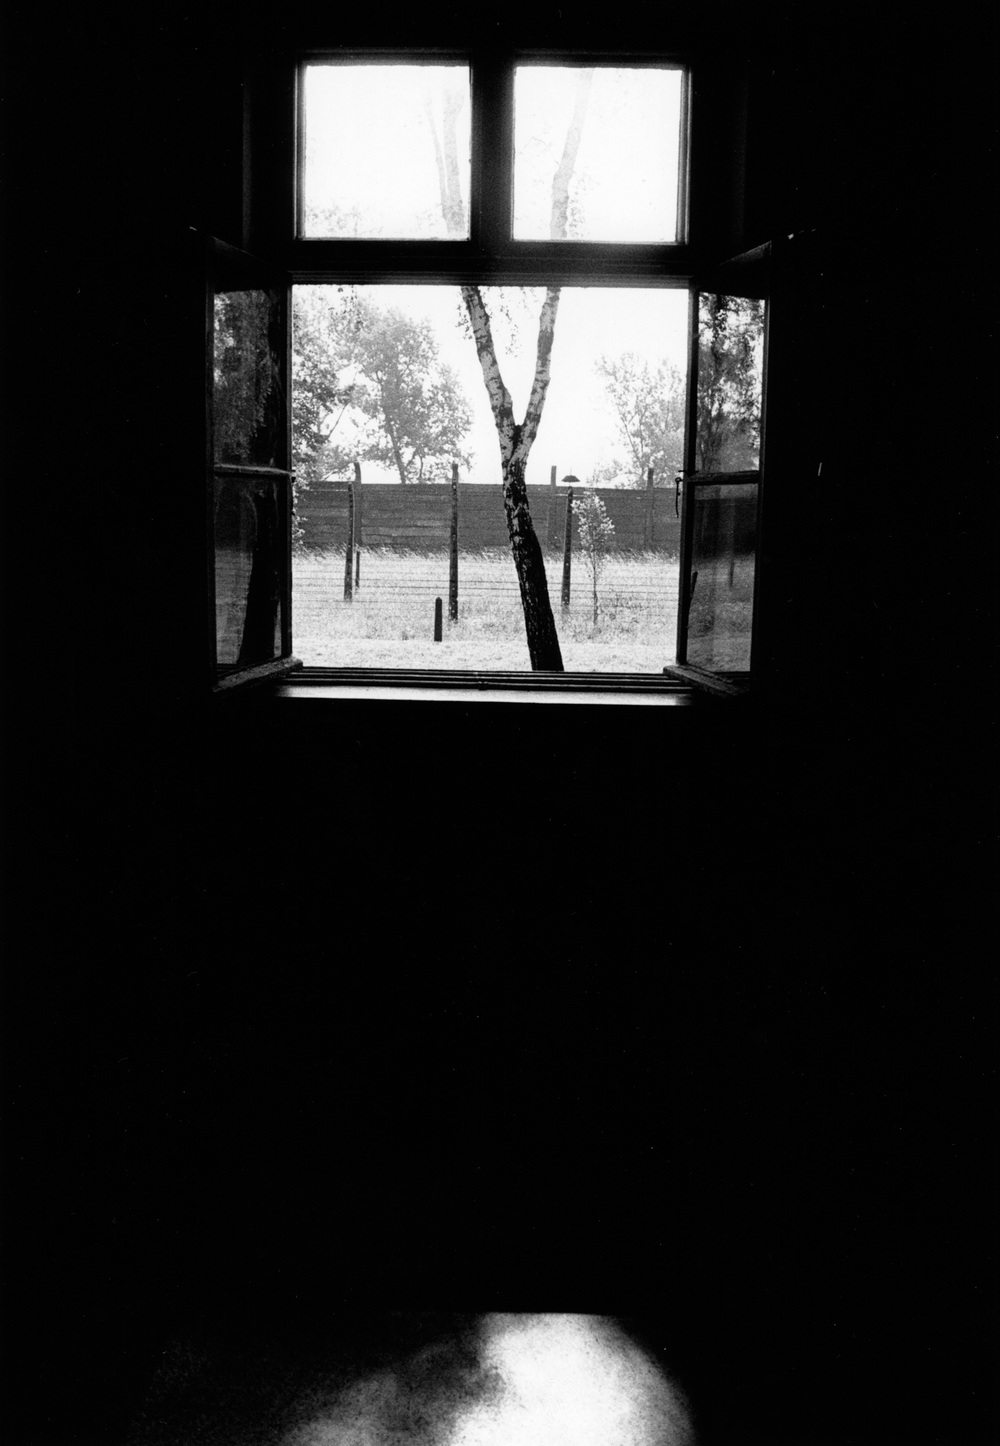 Cell-Auschwitz-Concentration-Camp--Poland.jpg